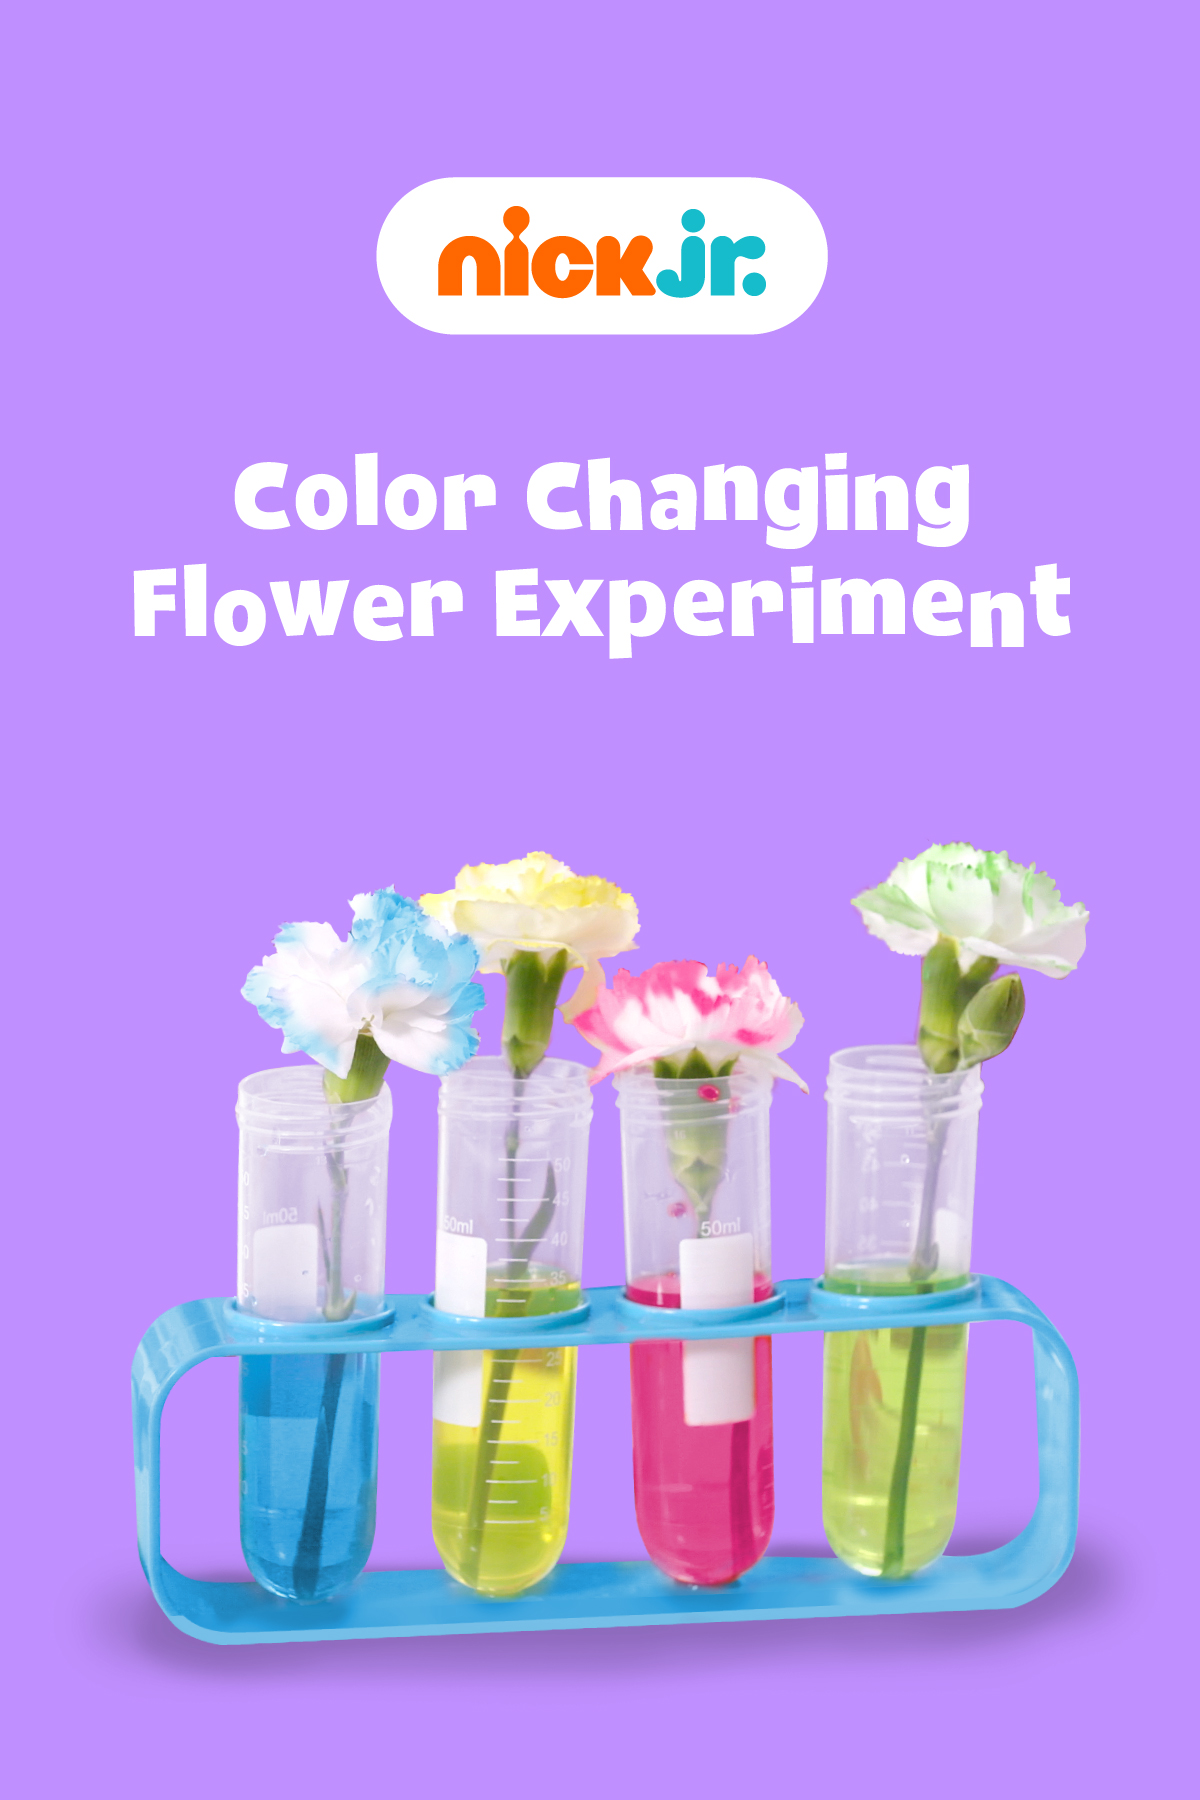 Nick Jr. Coloring Changing Flower Experiment